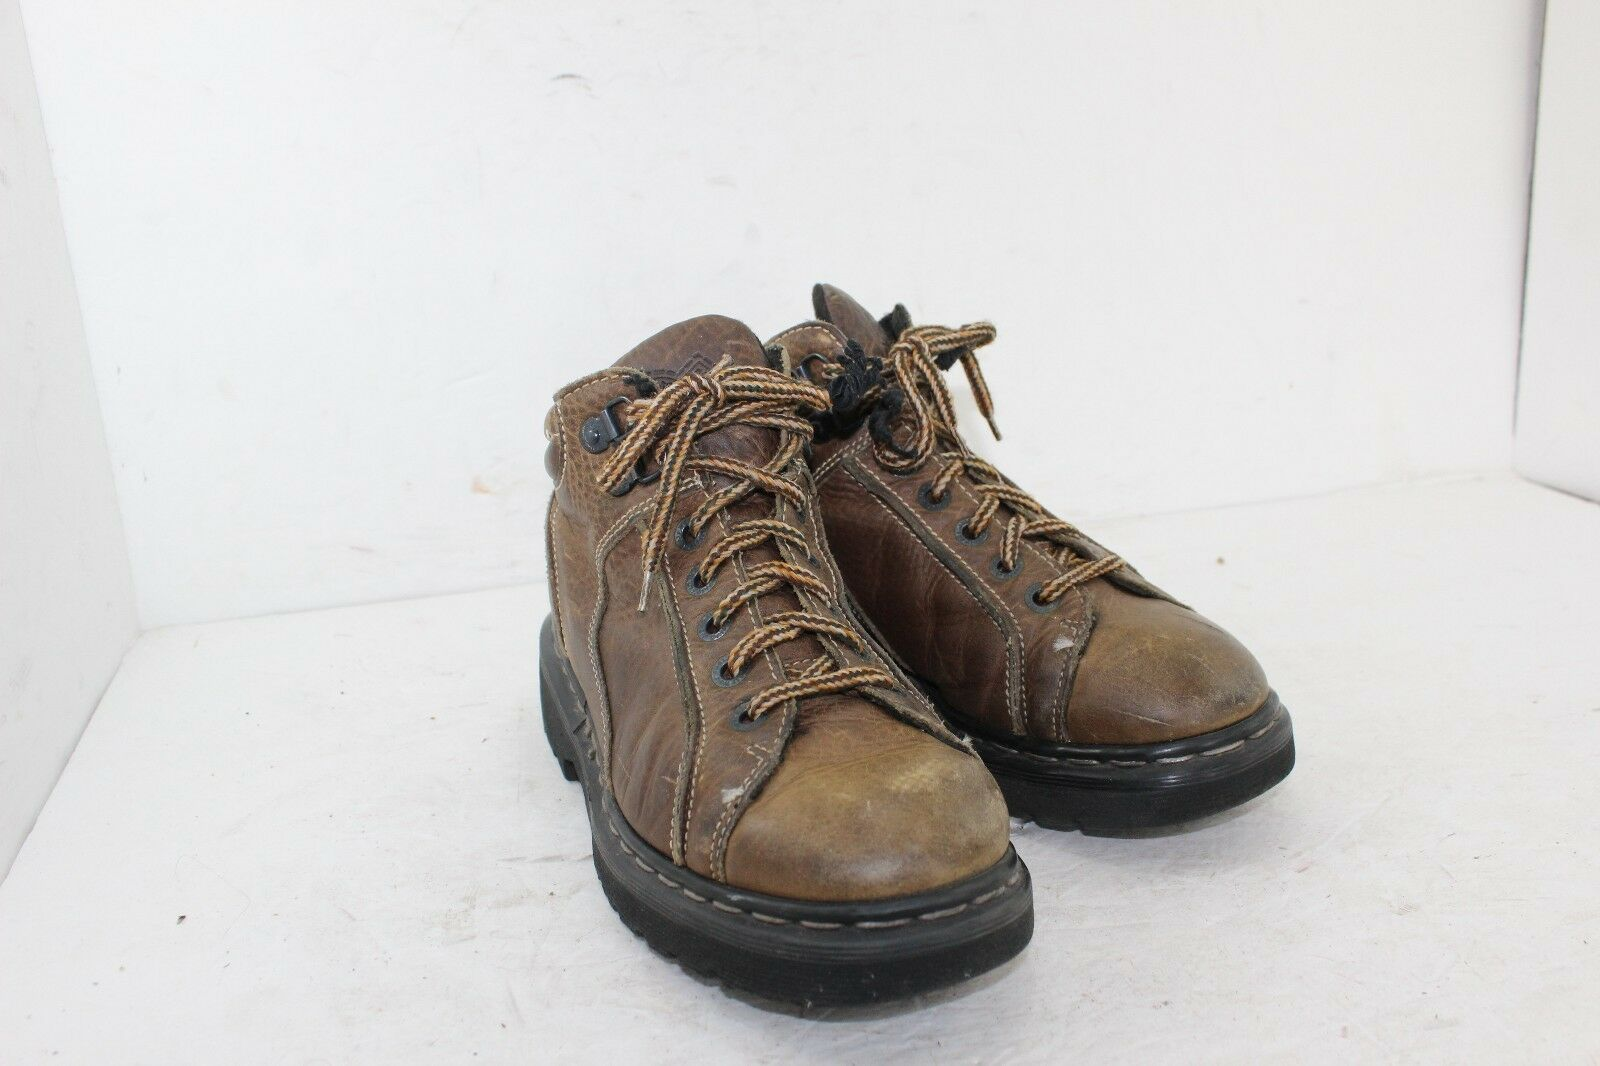 DR MARTENS BOOTS SIZE 8 BROWNS IN GREAT CONDITION LEATHER MADE IN ENGLAND